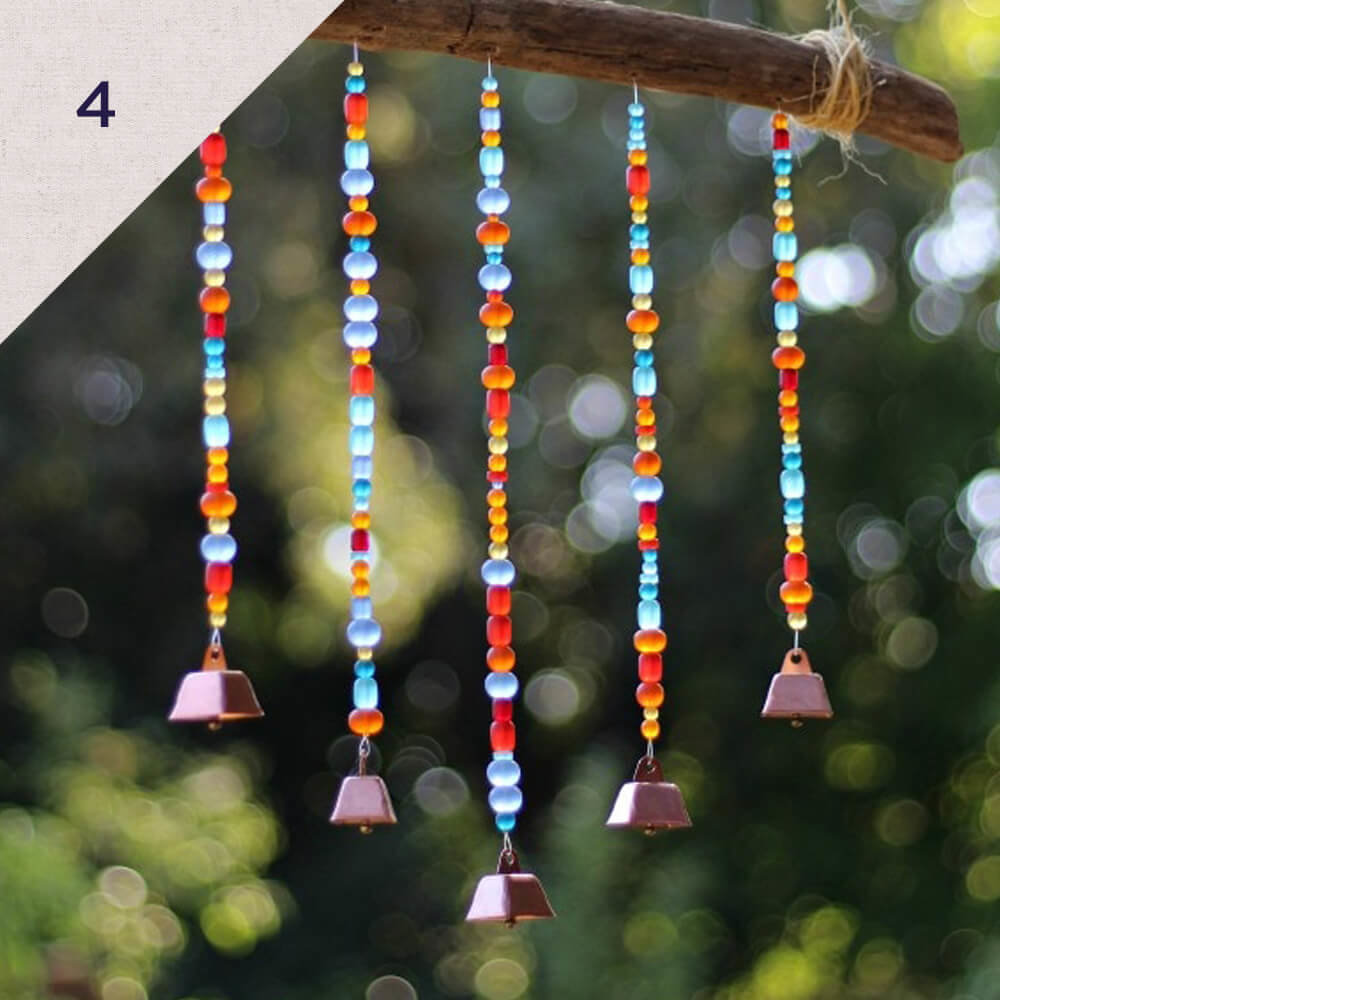 Easy sea glass wind chimes DIY - Rhythms of Play has the instructions